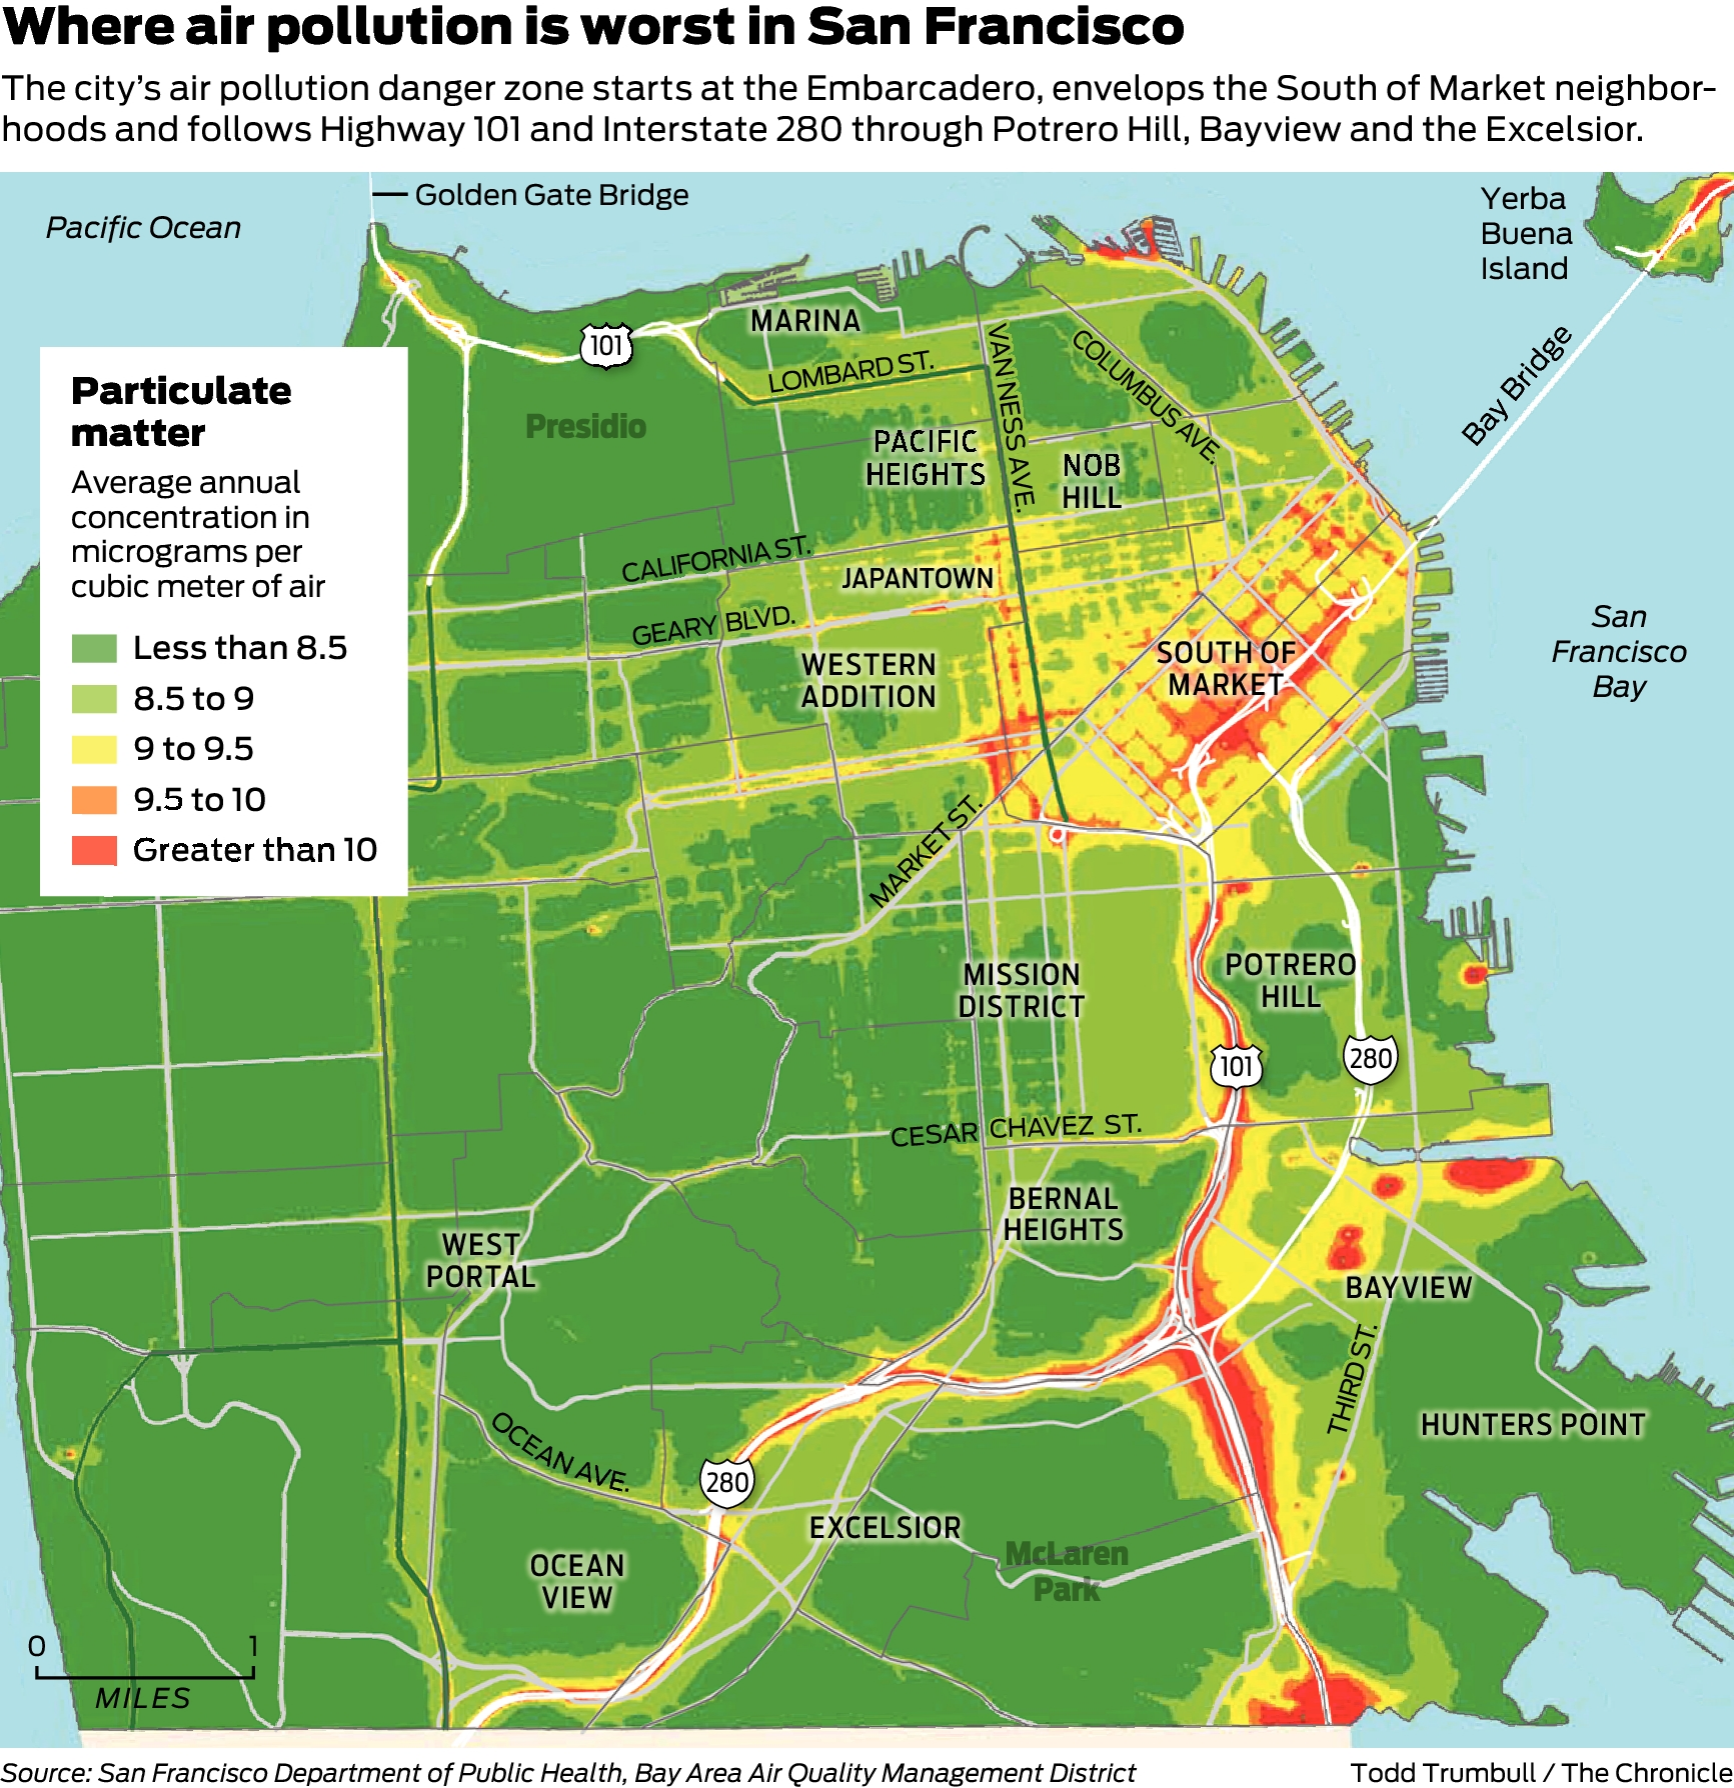 Map shows which SF neighborhoods are hit hardest by air ... on palo alto, southern california, alameda county, kyoto area map, sonoma county, santa clara county, east bay, northern california, golden gate bridge, cupertino area map, pacific coast area map, san diego, downtown san jose area map, evansville area map, napa valley area map, san jose, orange county, san mateo county, antioch area map, oceanside area map, southern arizona area map, rhode island area map, silicon valley, saint paul area map, oakland area map, santa clara, new london area map, santa rosa, brooklyn college area map, springfield ma area map, bay area map, marin county, california map, city area map, johns creek area map, central fl area map,